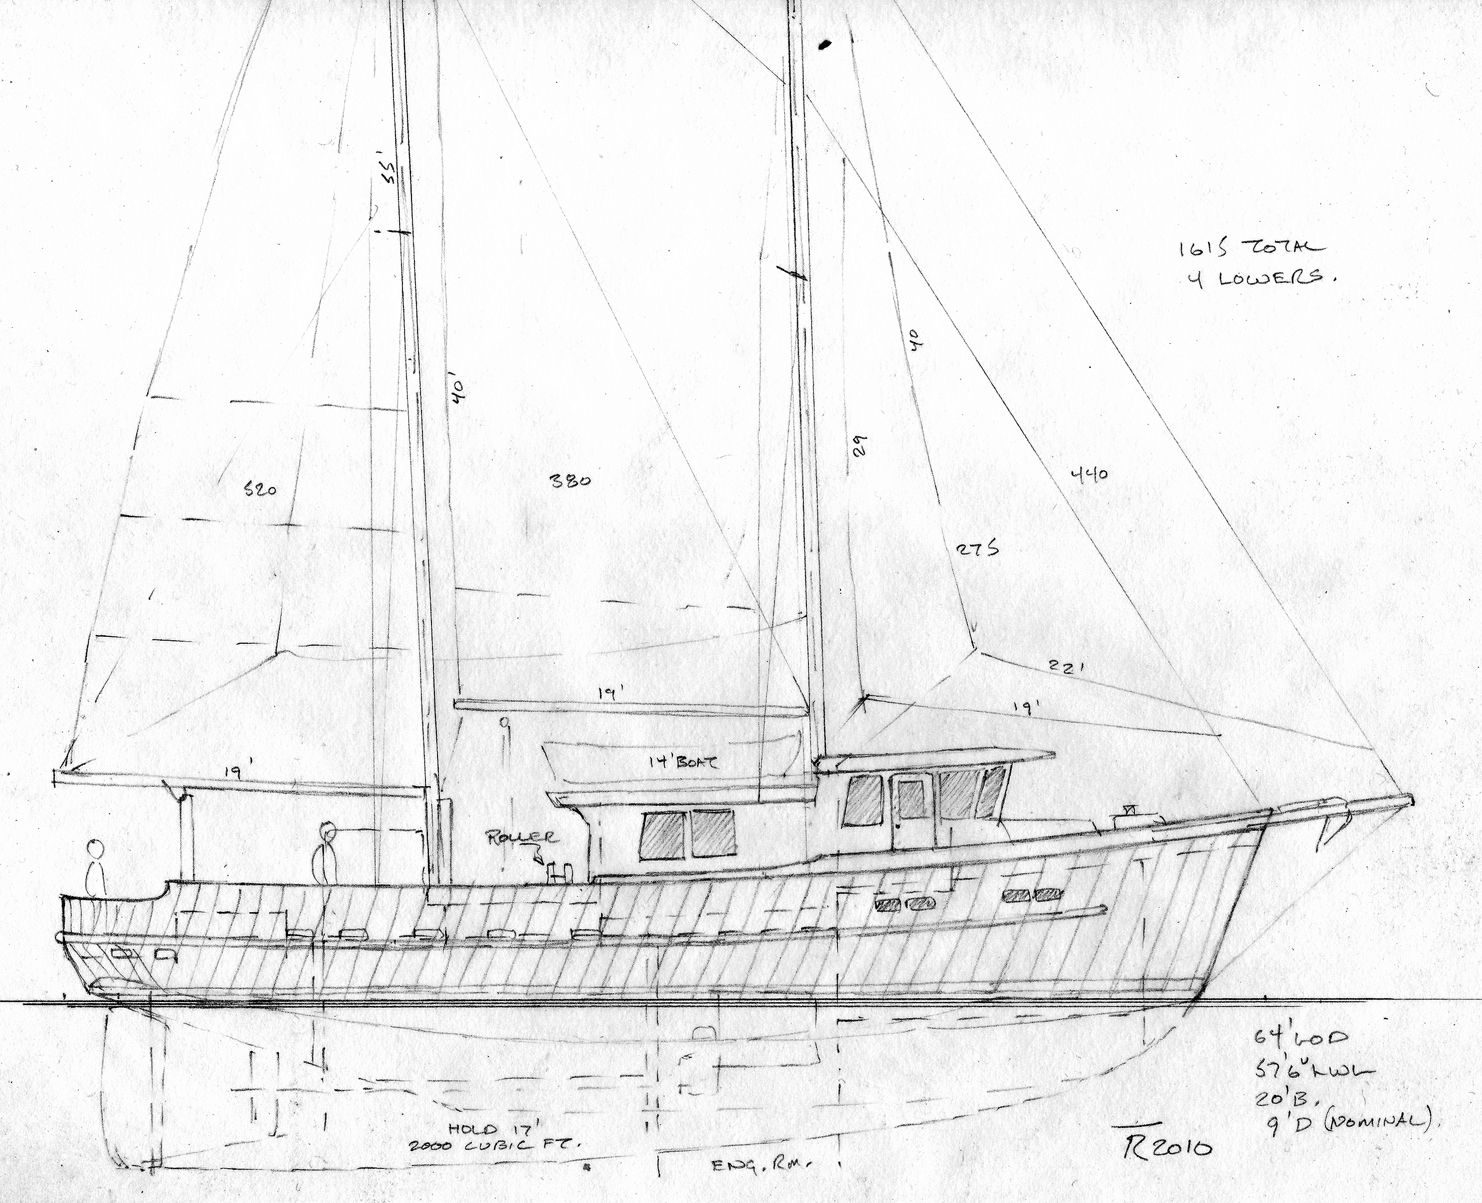 64' troller fishing schooner ~ Sail Boat Designs by Tad